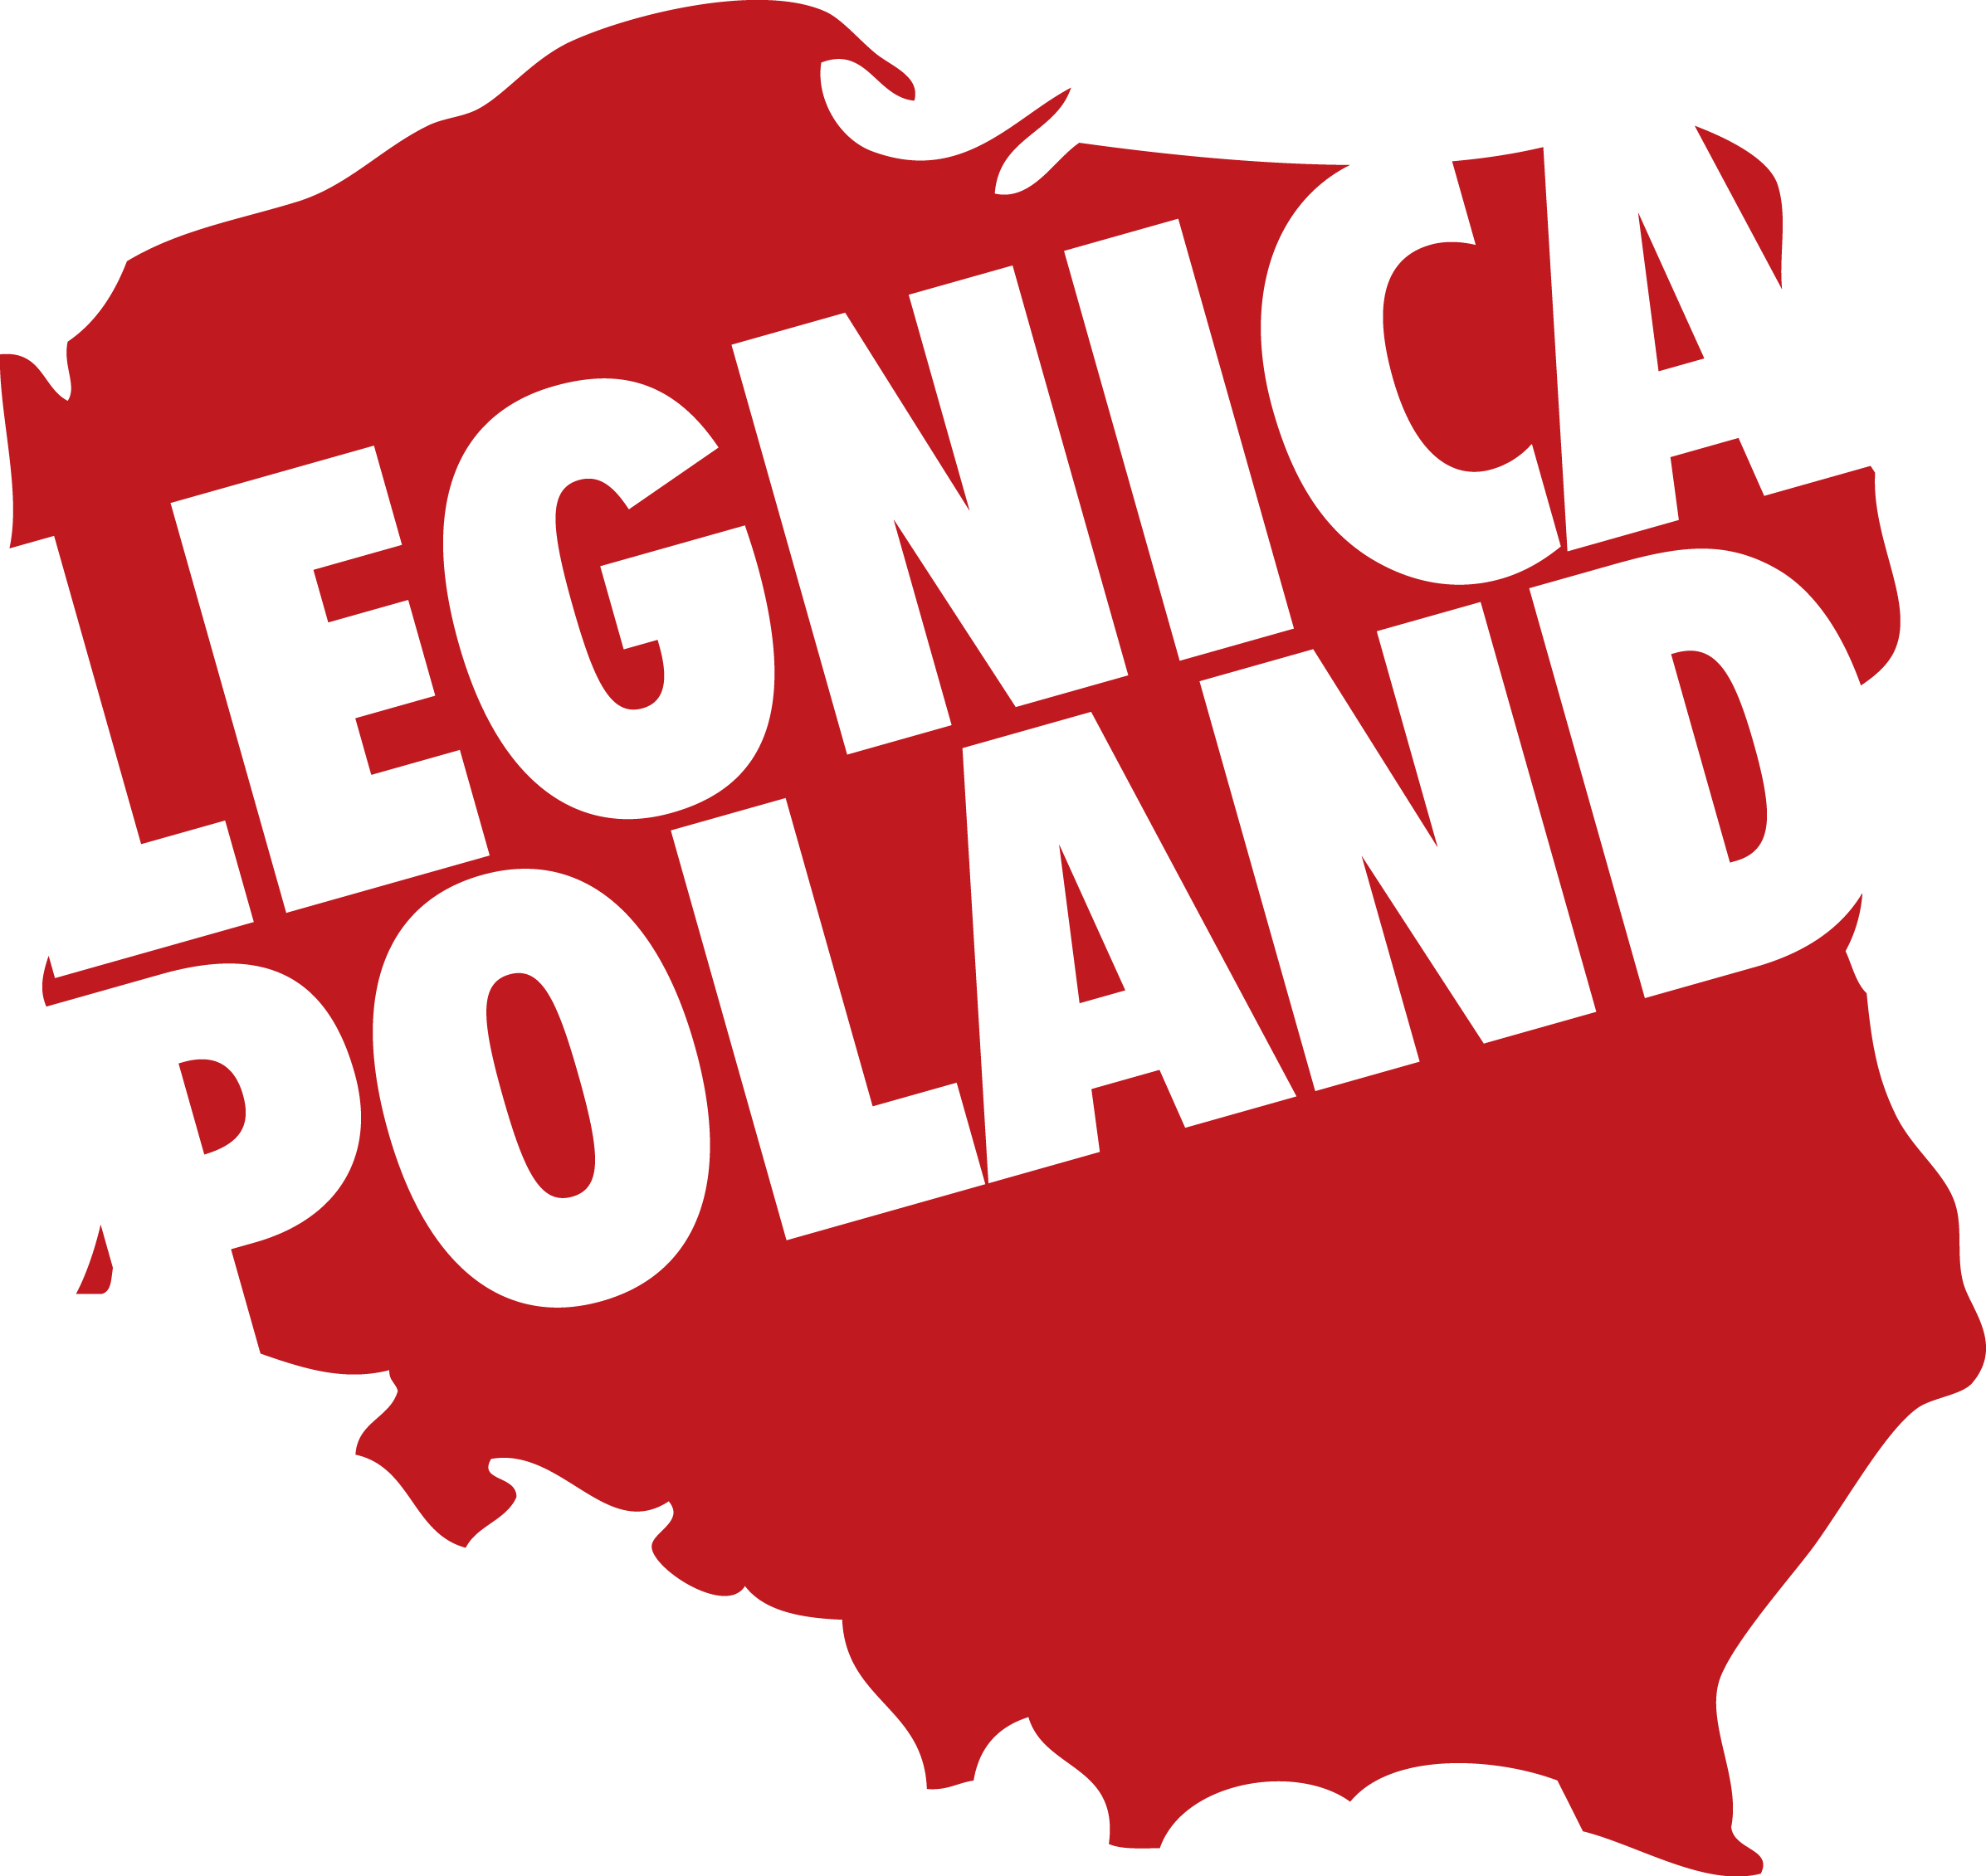 legnica_02_red.png